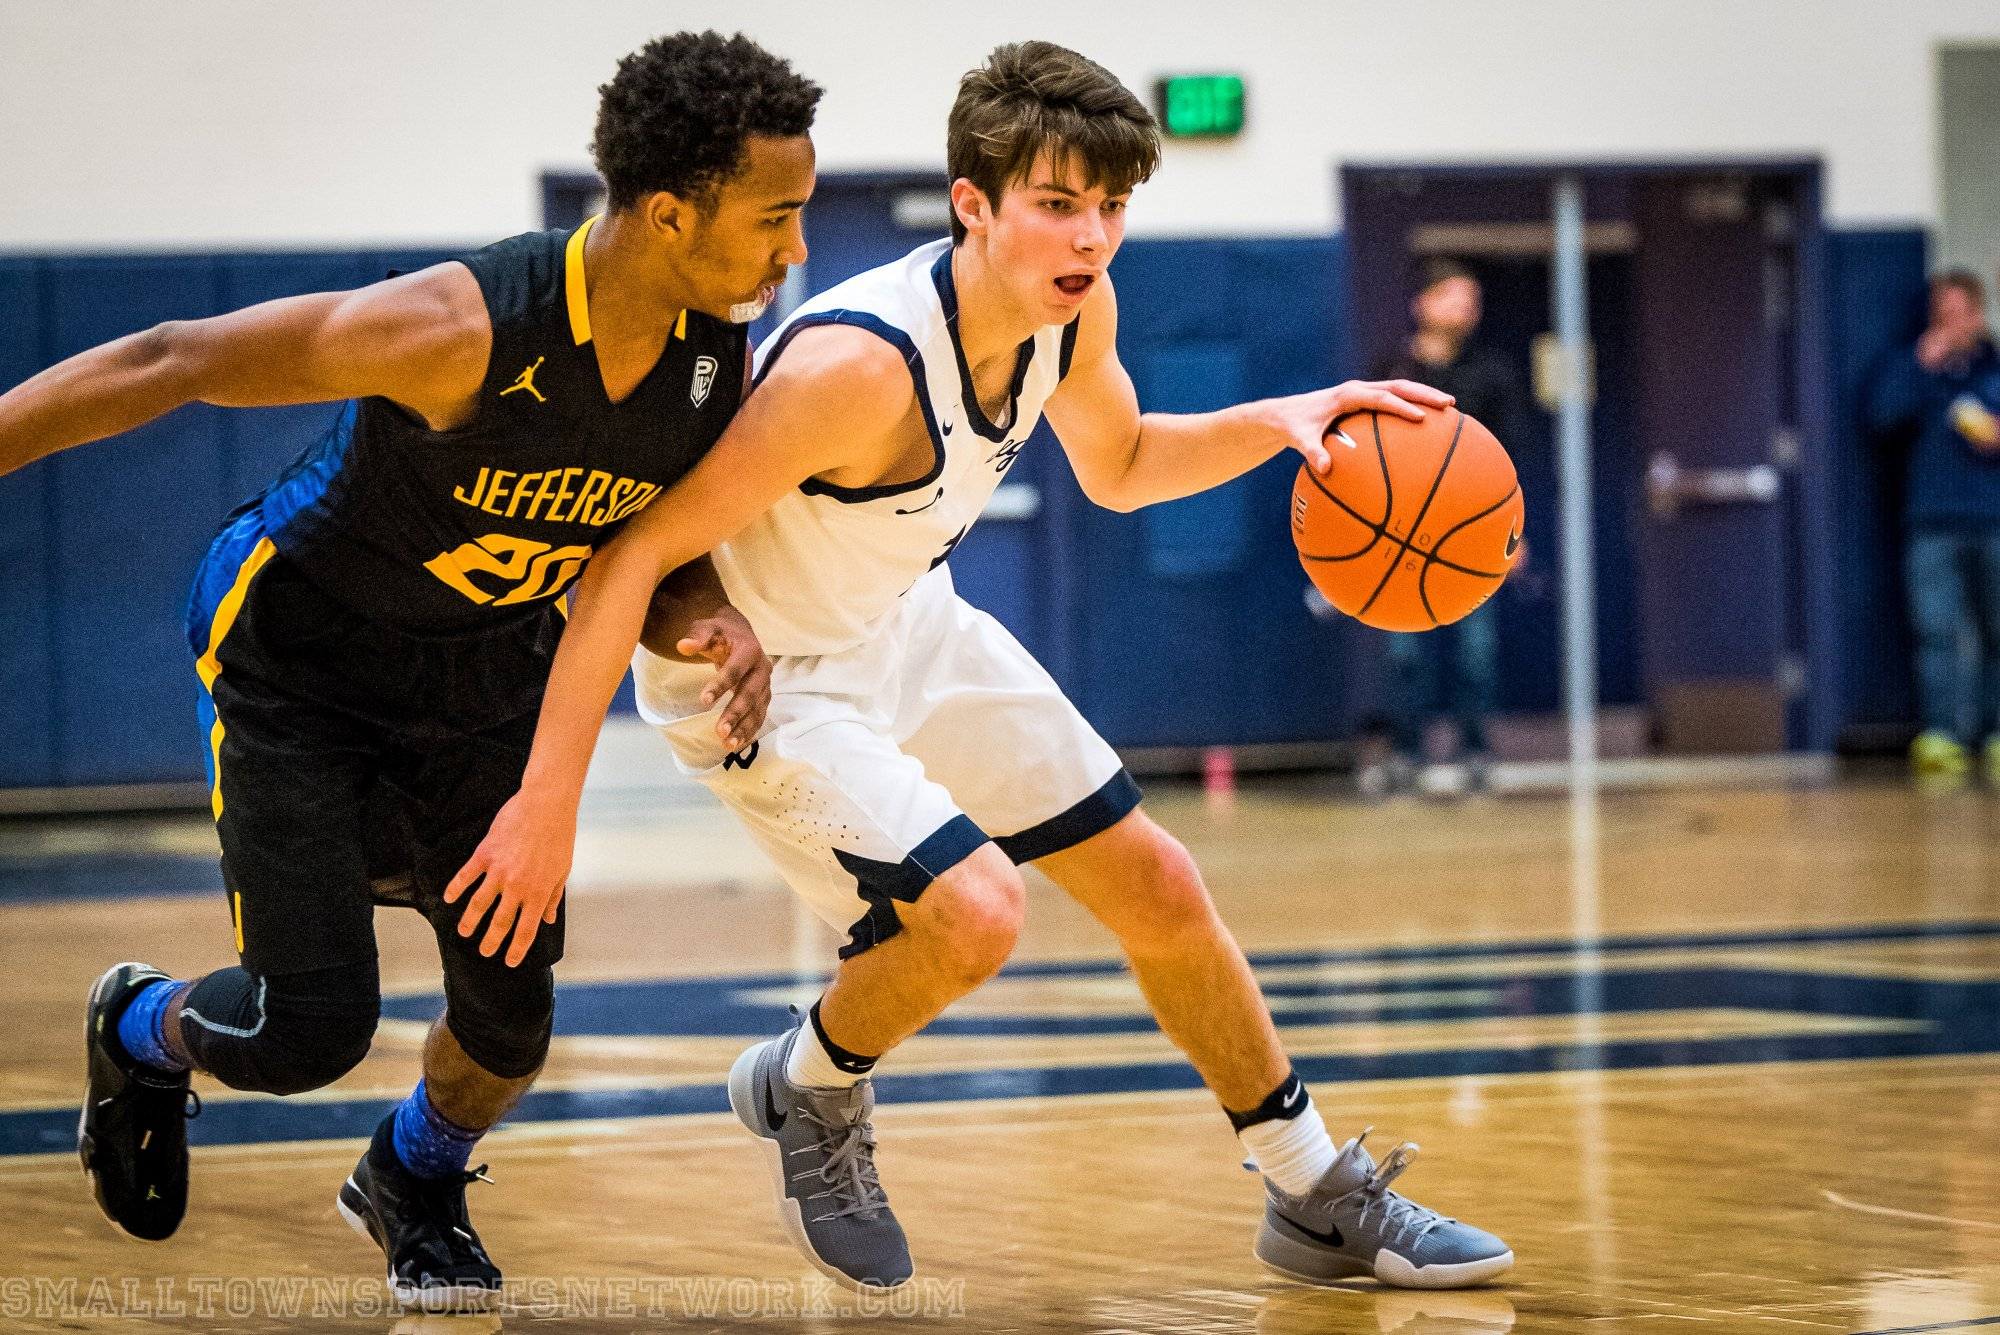 Jefferson Defeats Lake Oswego